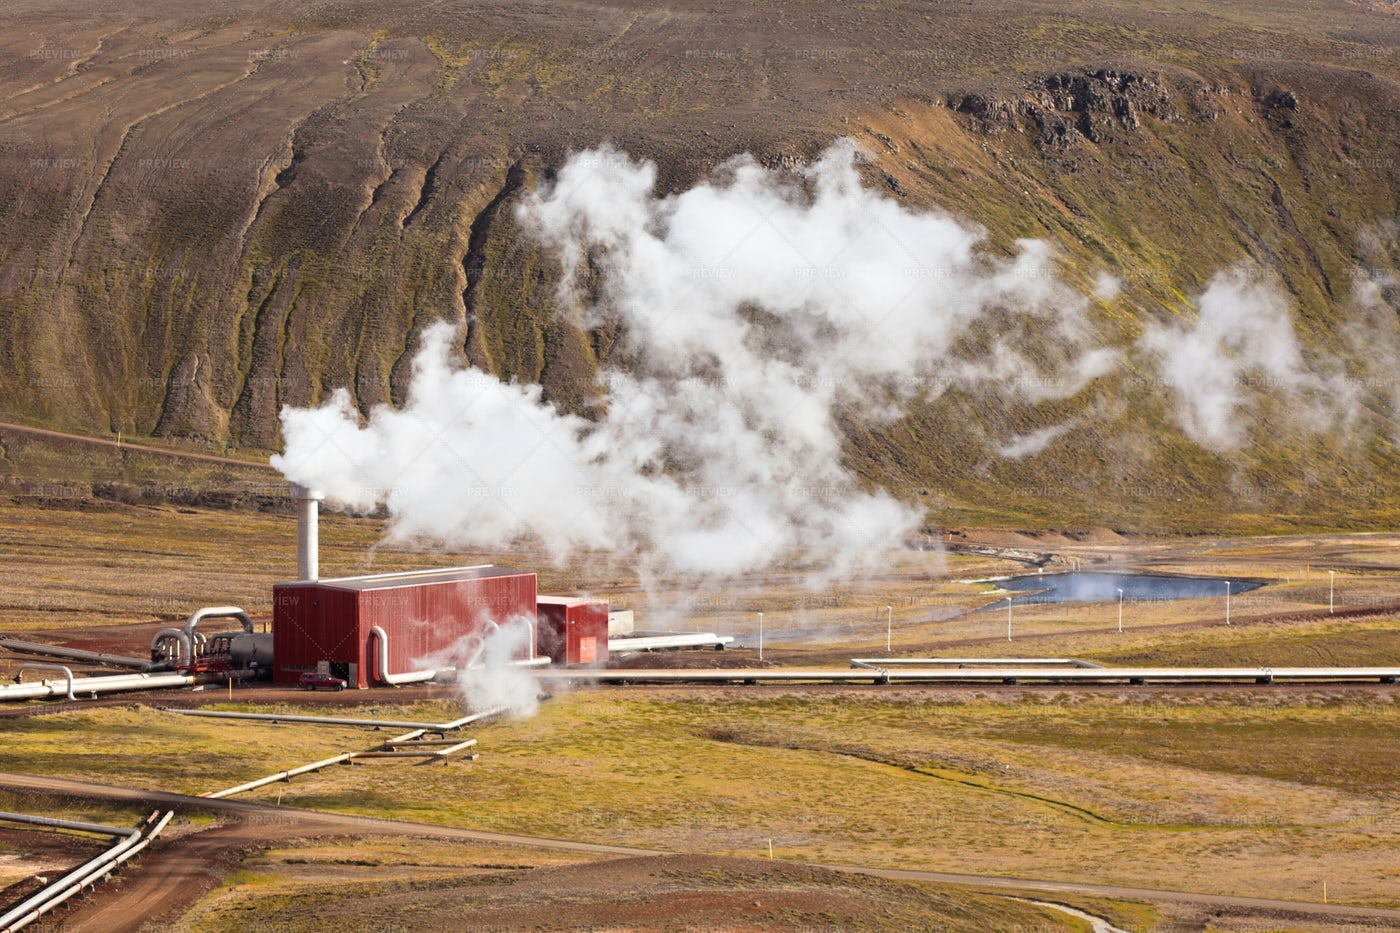 Geothermal Power Station In Iceland: Stock Photos